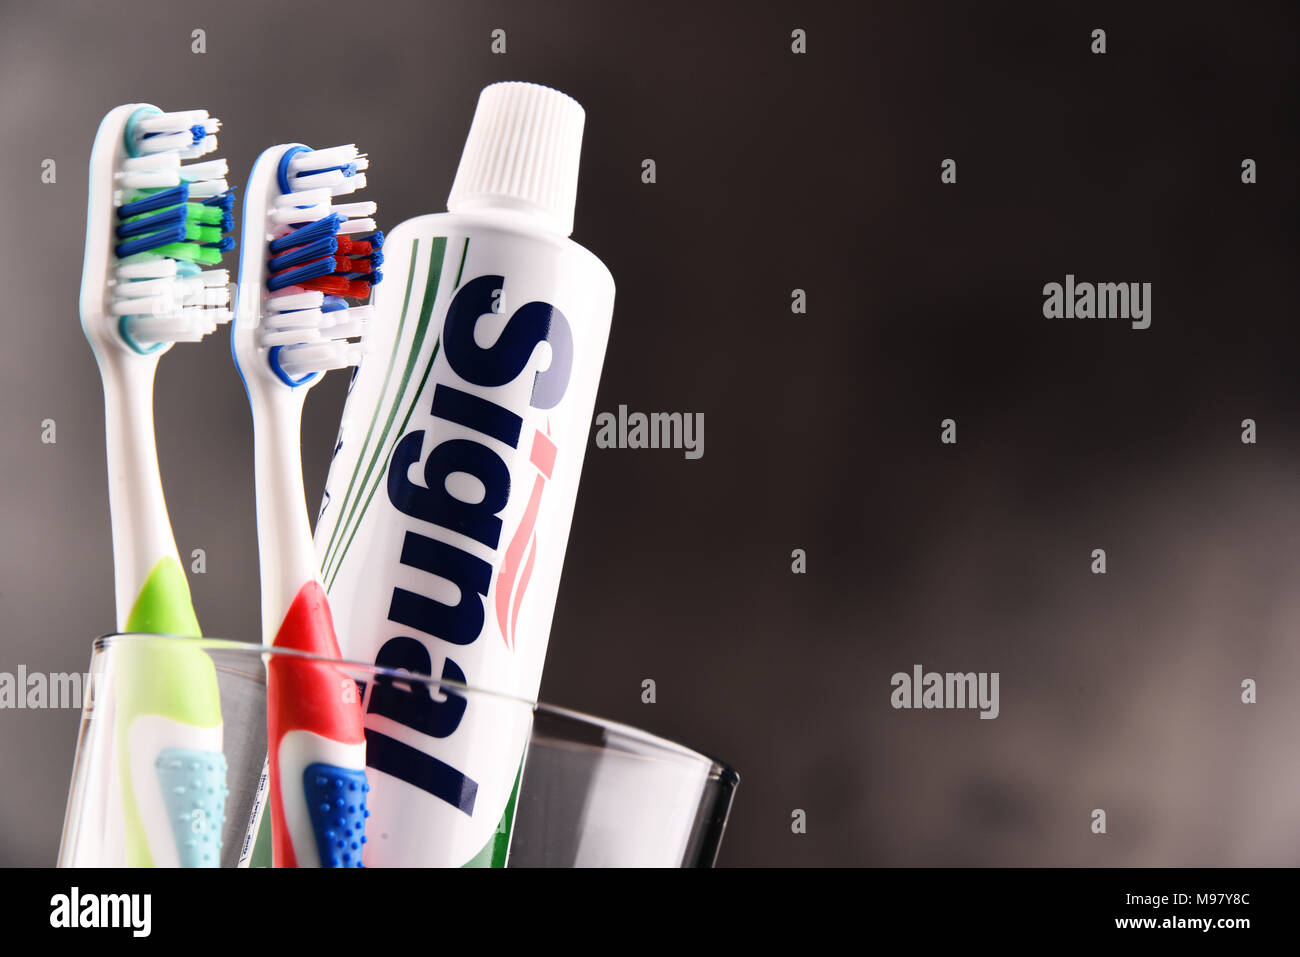 POZNAN, POLAND - FEB 14, 2018: Signal, a brand of toothpaste produced by the Unilever company, in some countries sold also as Pepsodent, Mentadent, Zh - Stock Image